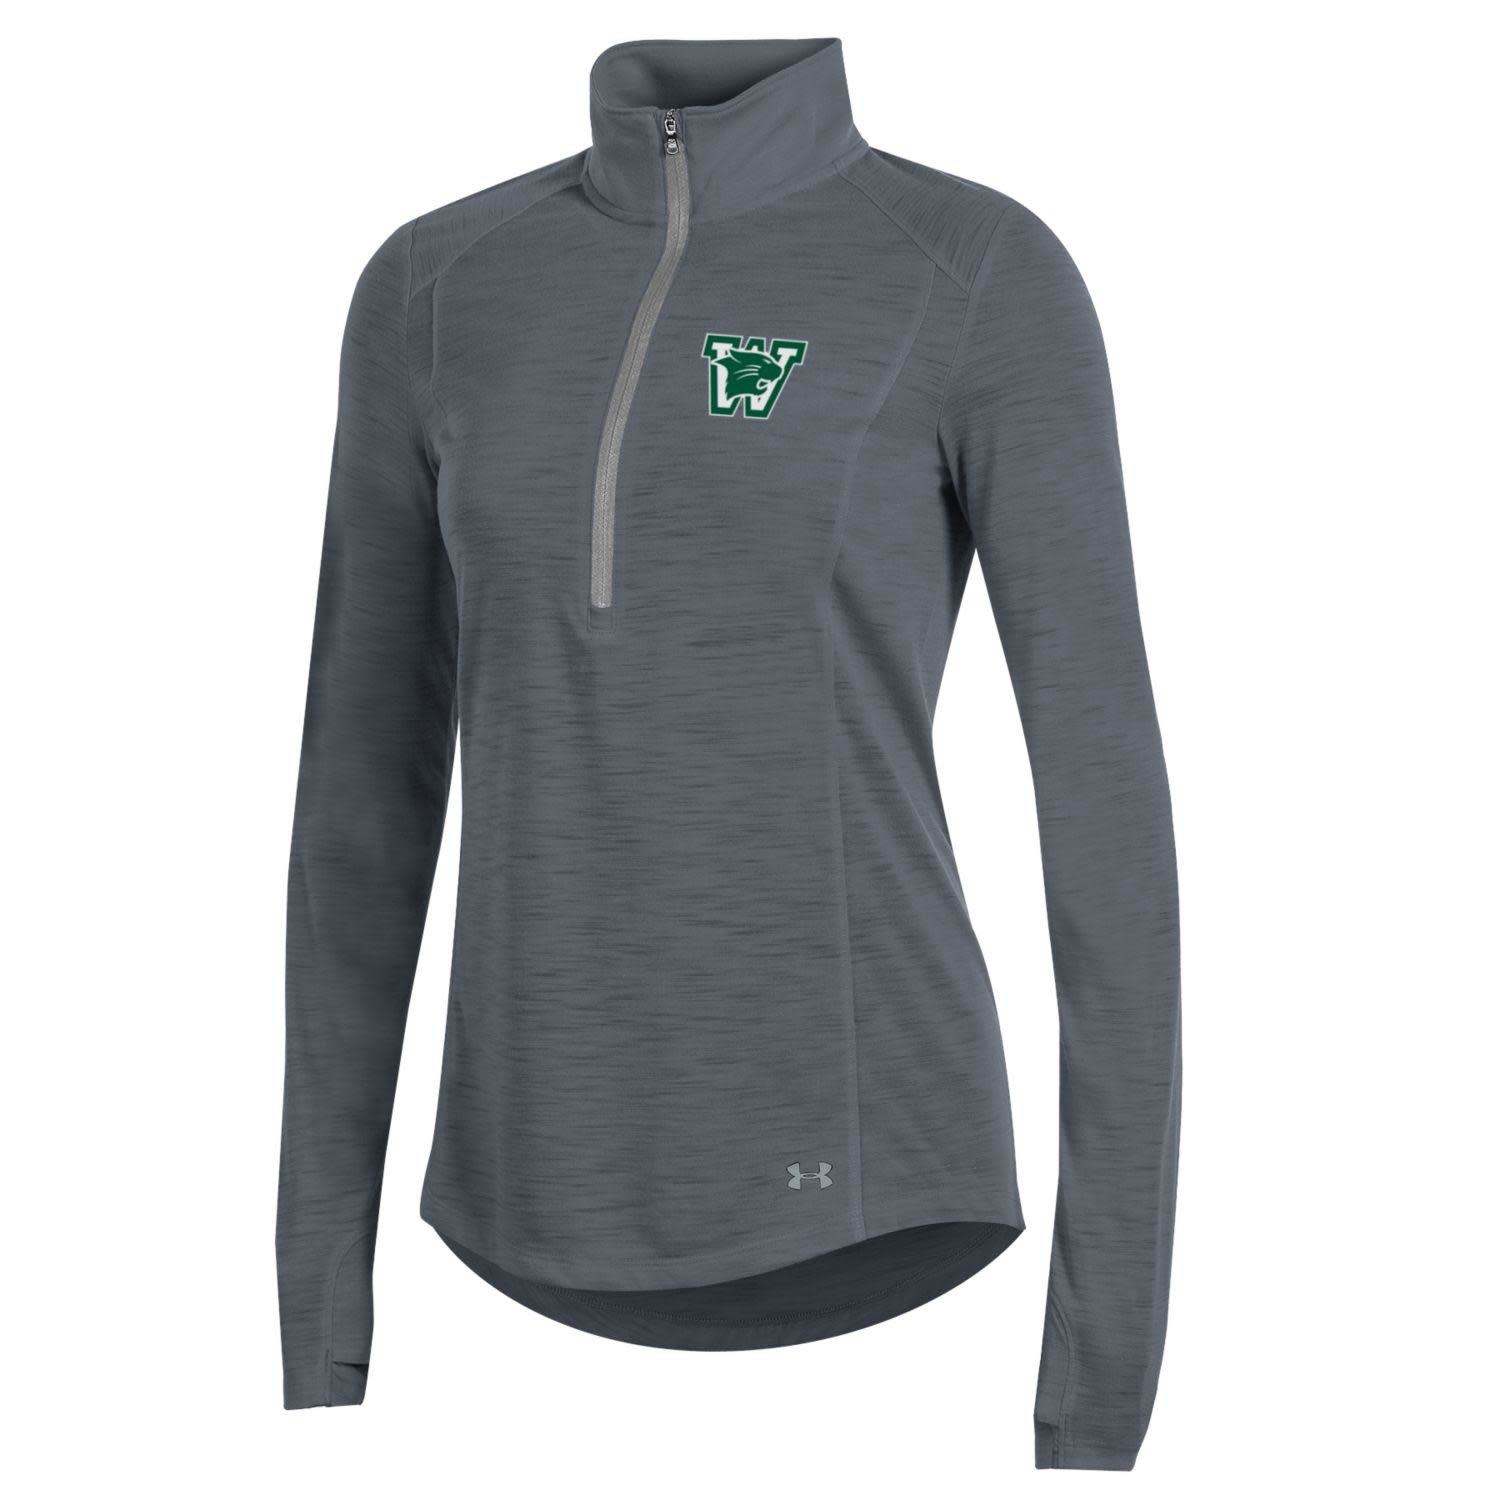 Under Armour Pullover: UA Women's Threadborne Slub 1/4 Zip - Green